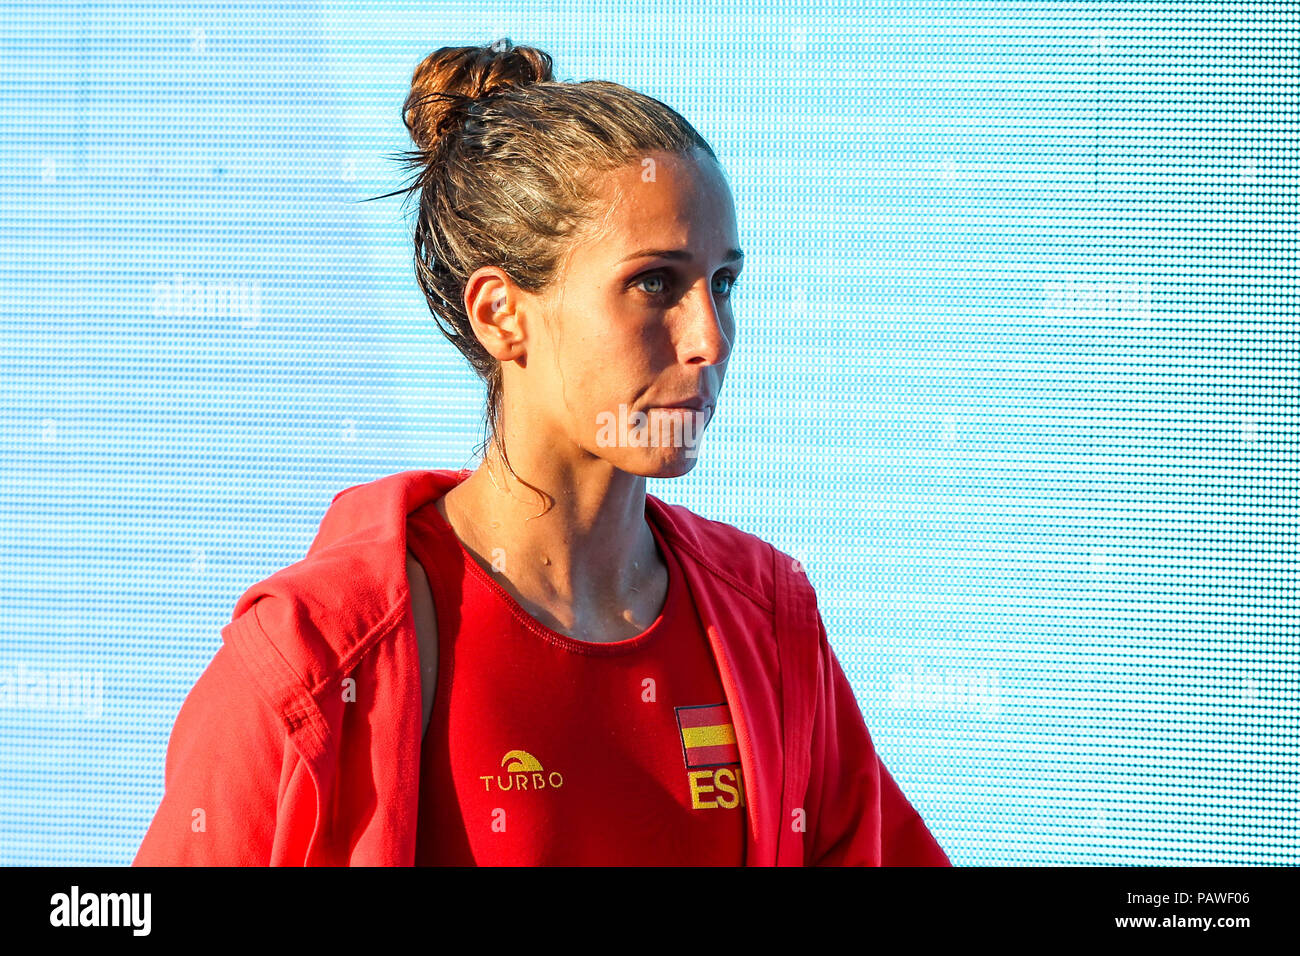 25th July 2018, Bernat Picornell Pools, Barcelona, Spain; 33rd European Water Polo Championships, Spain Women versus Greece Women; Clara Espar attack from Spain tearful after losing the match - Stock Image